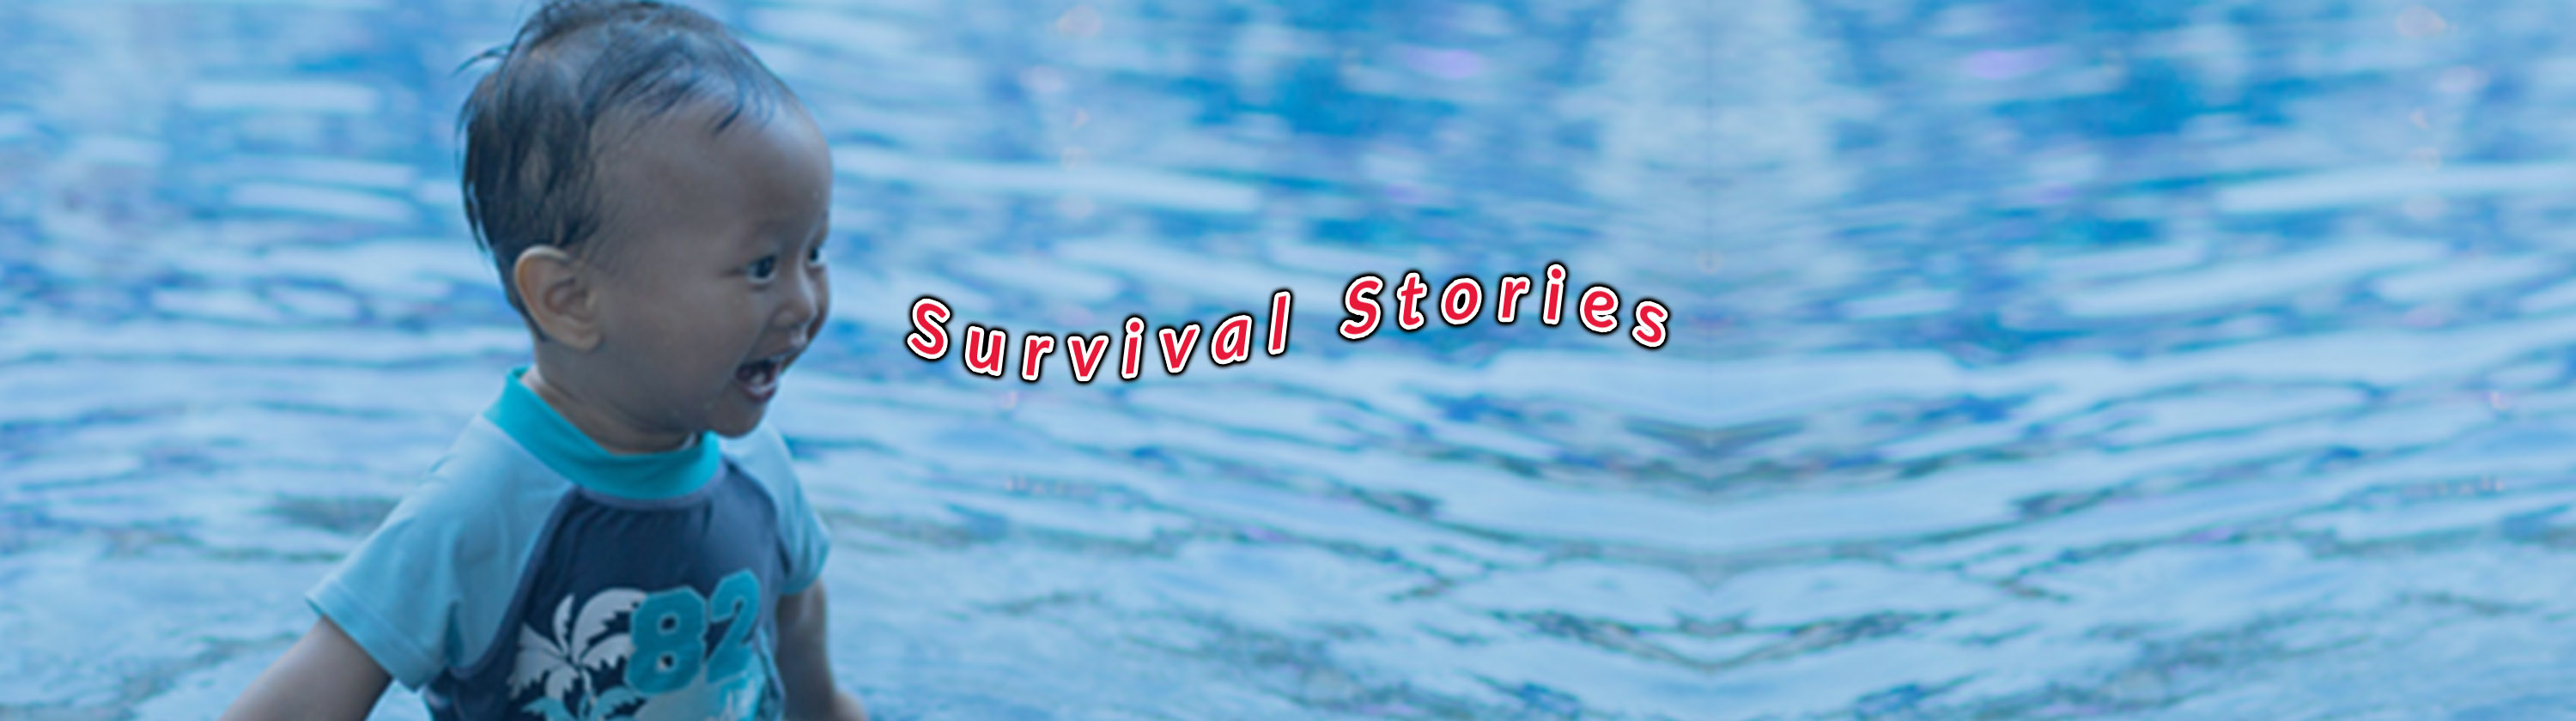 Waterwise_Infant_Aquatics_Survival_Swim_Swimming_Lessons_Perth_Survival Stories